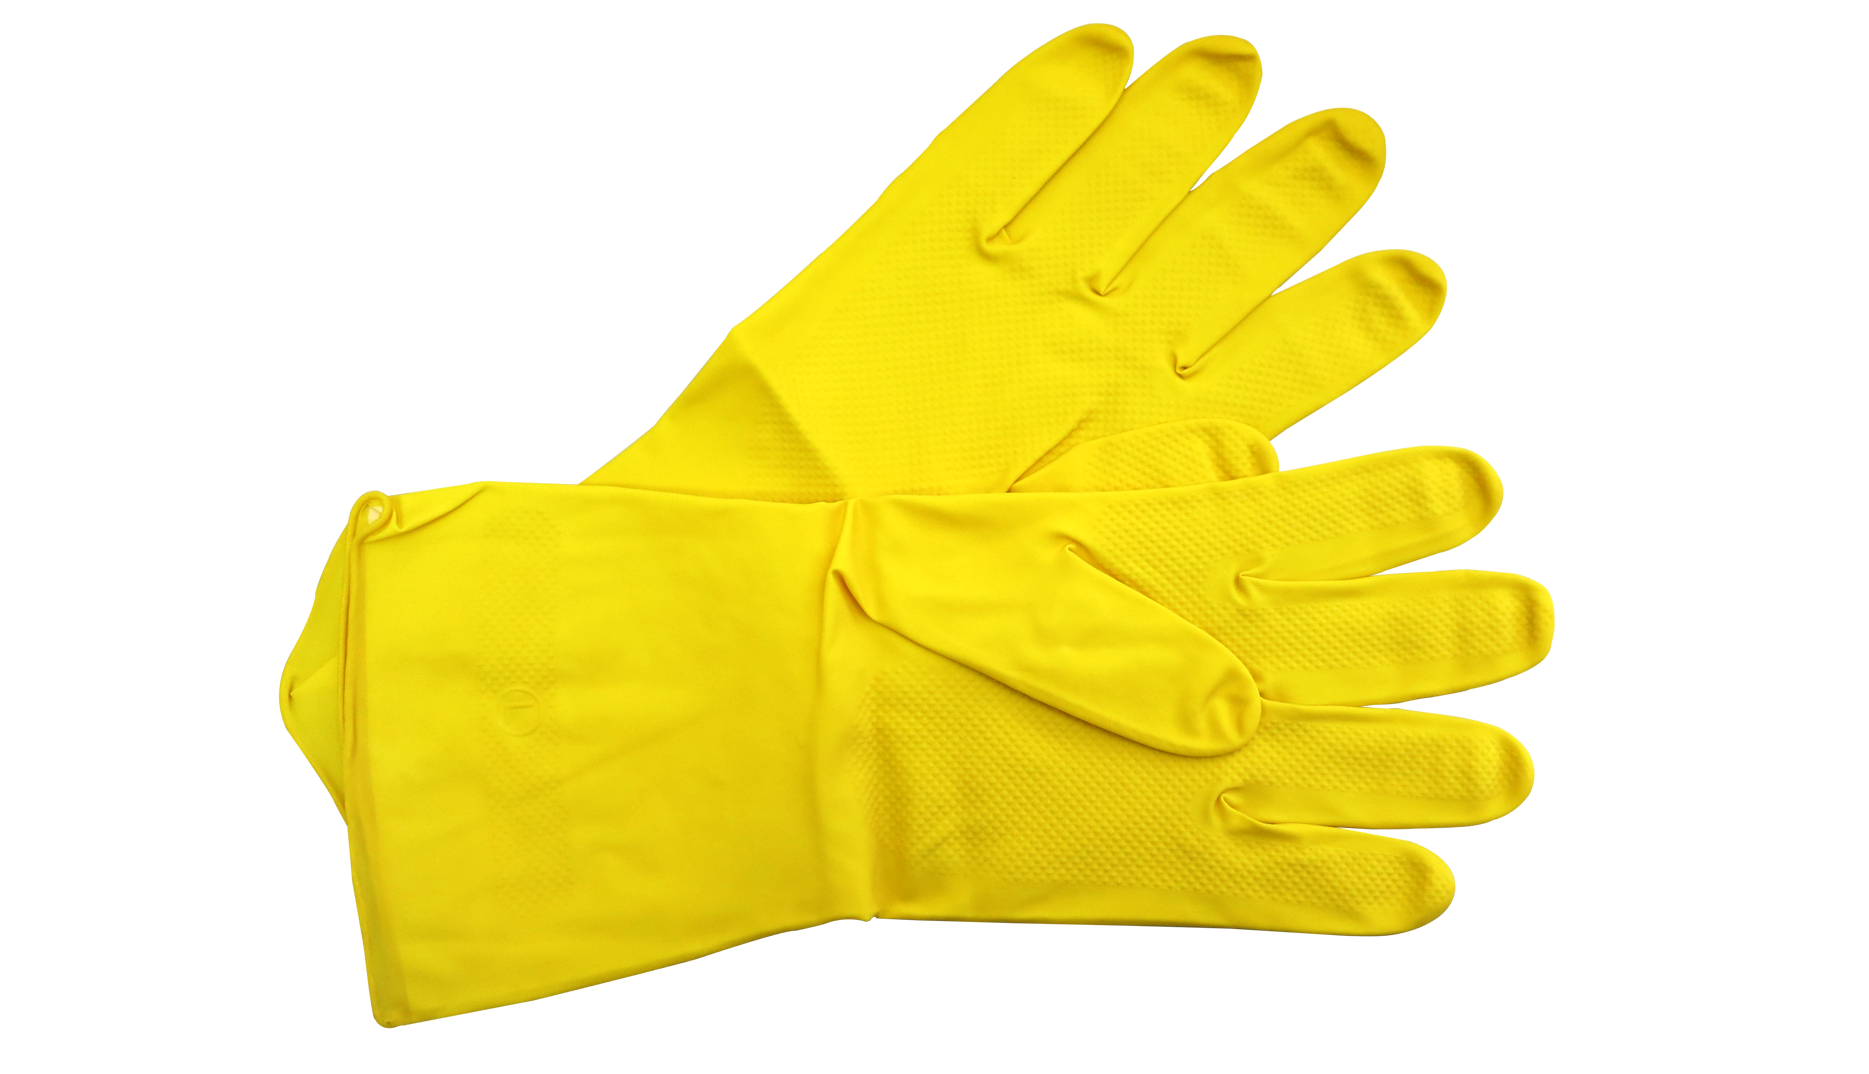 Cleaning disabilityafrica org in. Gloves clipart yellow glove